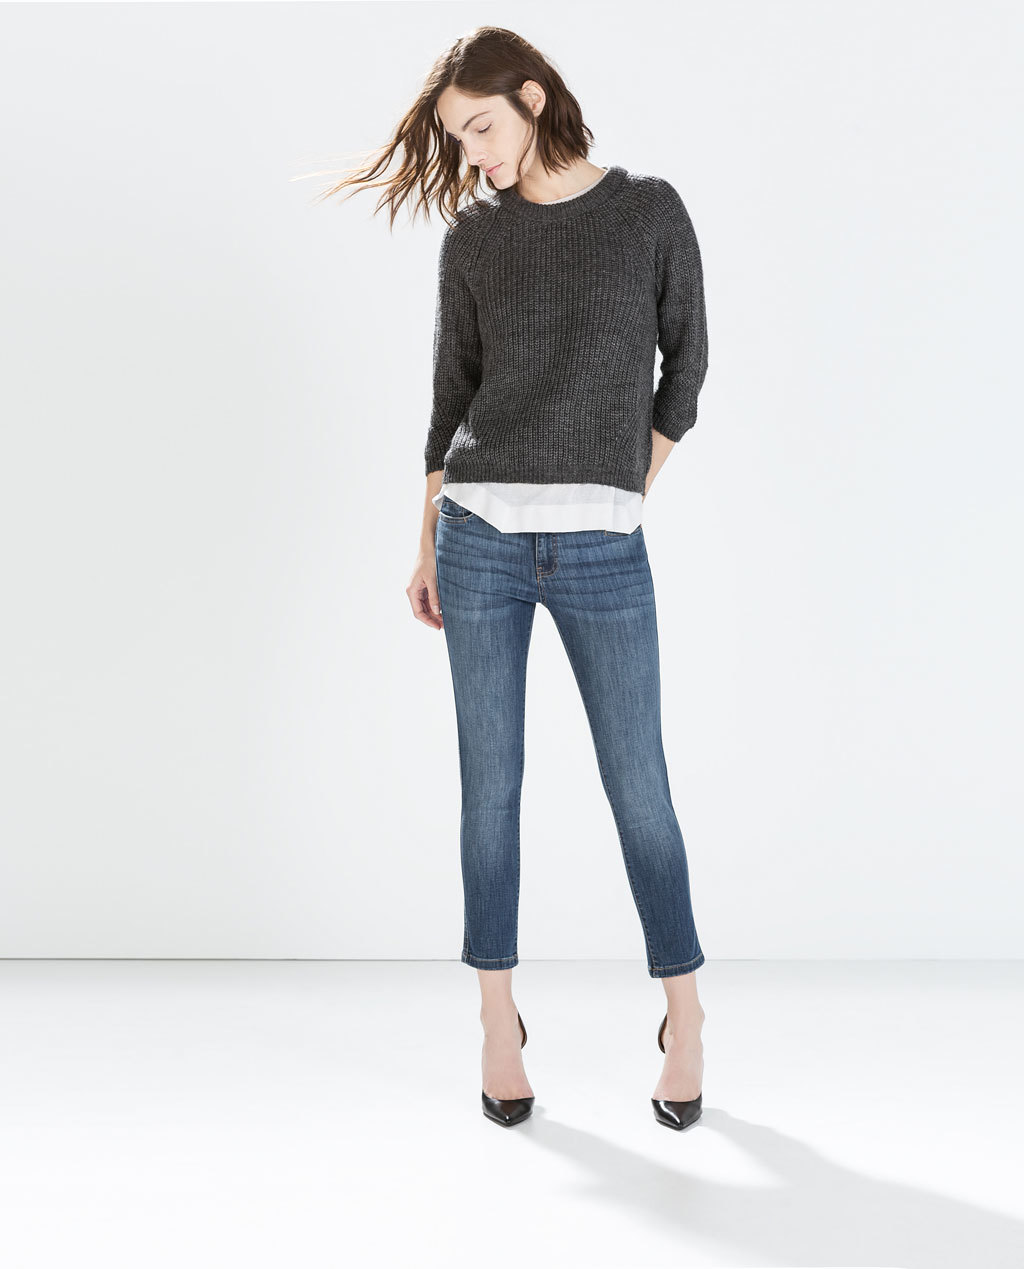 Fitted Cropped Jeans - style: skinny leg; pattern: plain; pocket detail: traditional 5 pocket; waist: mid/regular rise; predominant colour: denim; occasions: casual; length: ankle length; fibres: cotton - stretch; jeans detail: whiskering, shading down centre of thigh; texture group: denim; pattern type: fabric; season: a/w 2014; wardrobe: basic